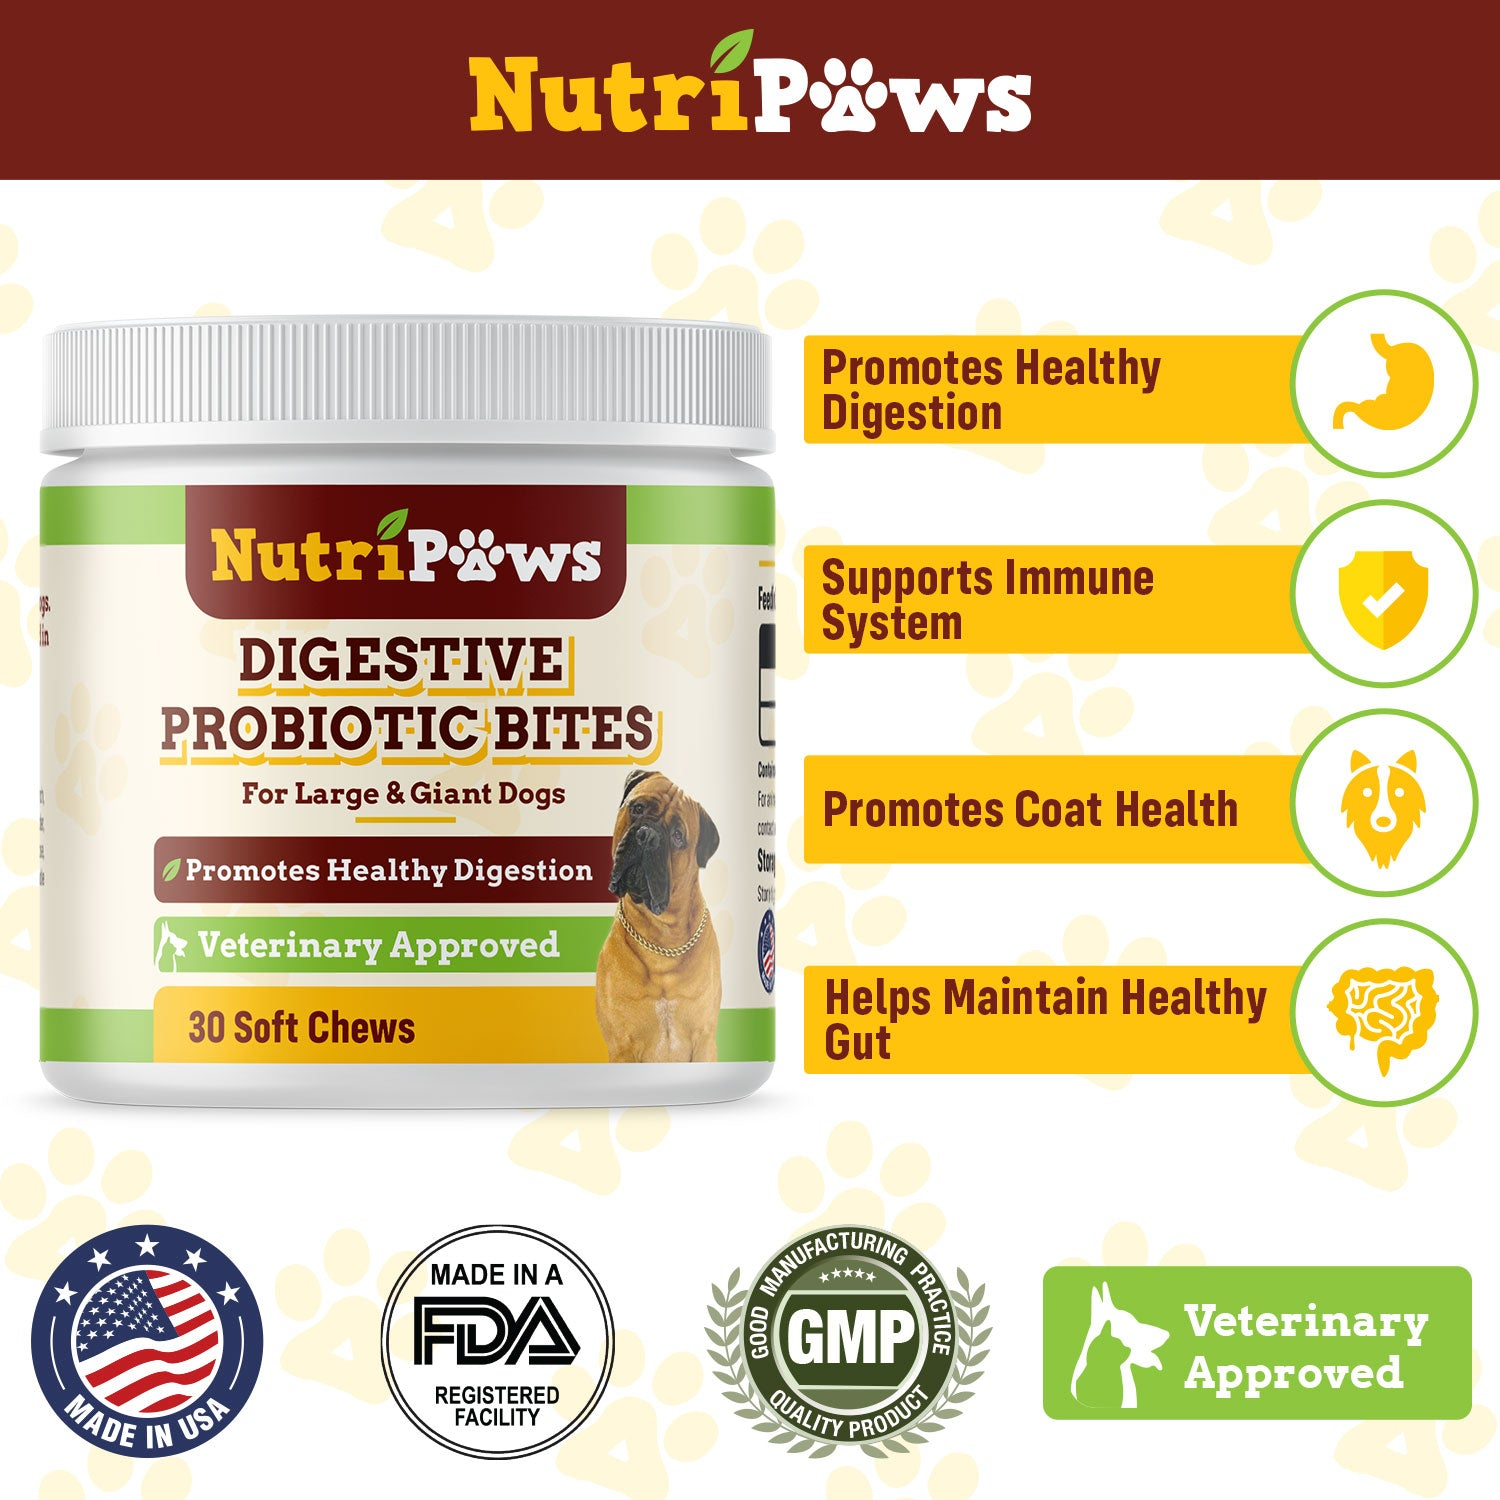 NutriPaws Digestive Probiotic Bites (Large/Giant Dogs)